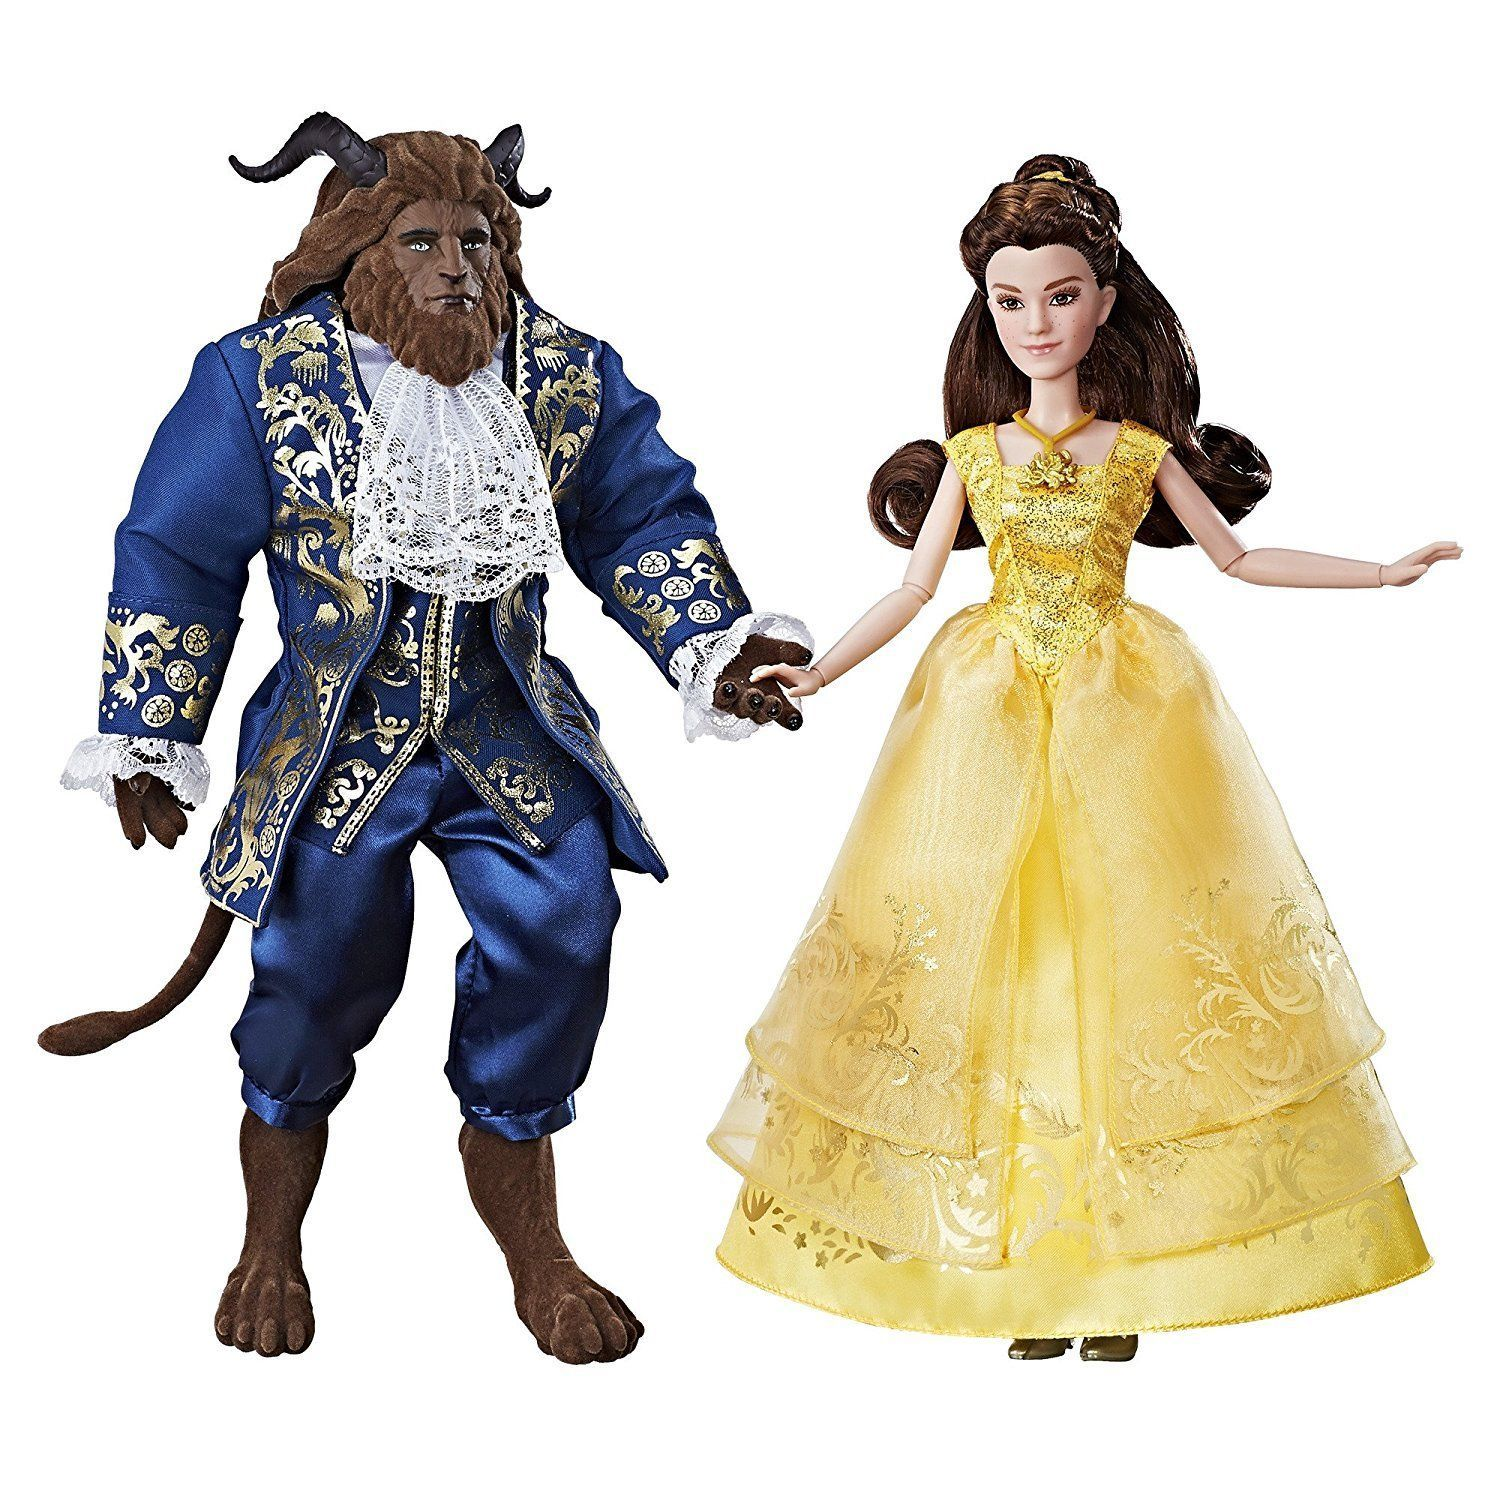 Disneys Beauty & The Beast Grand Romance Movie Doll 2 Pack Belle & Beast